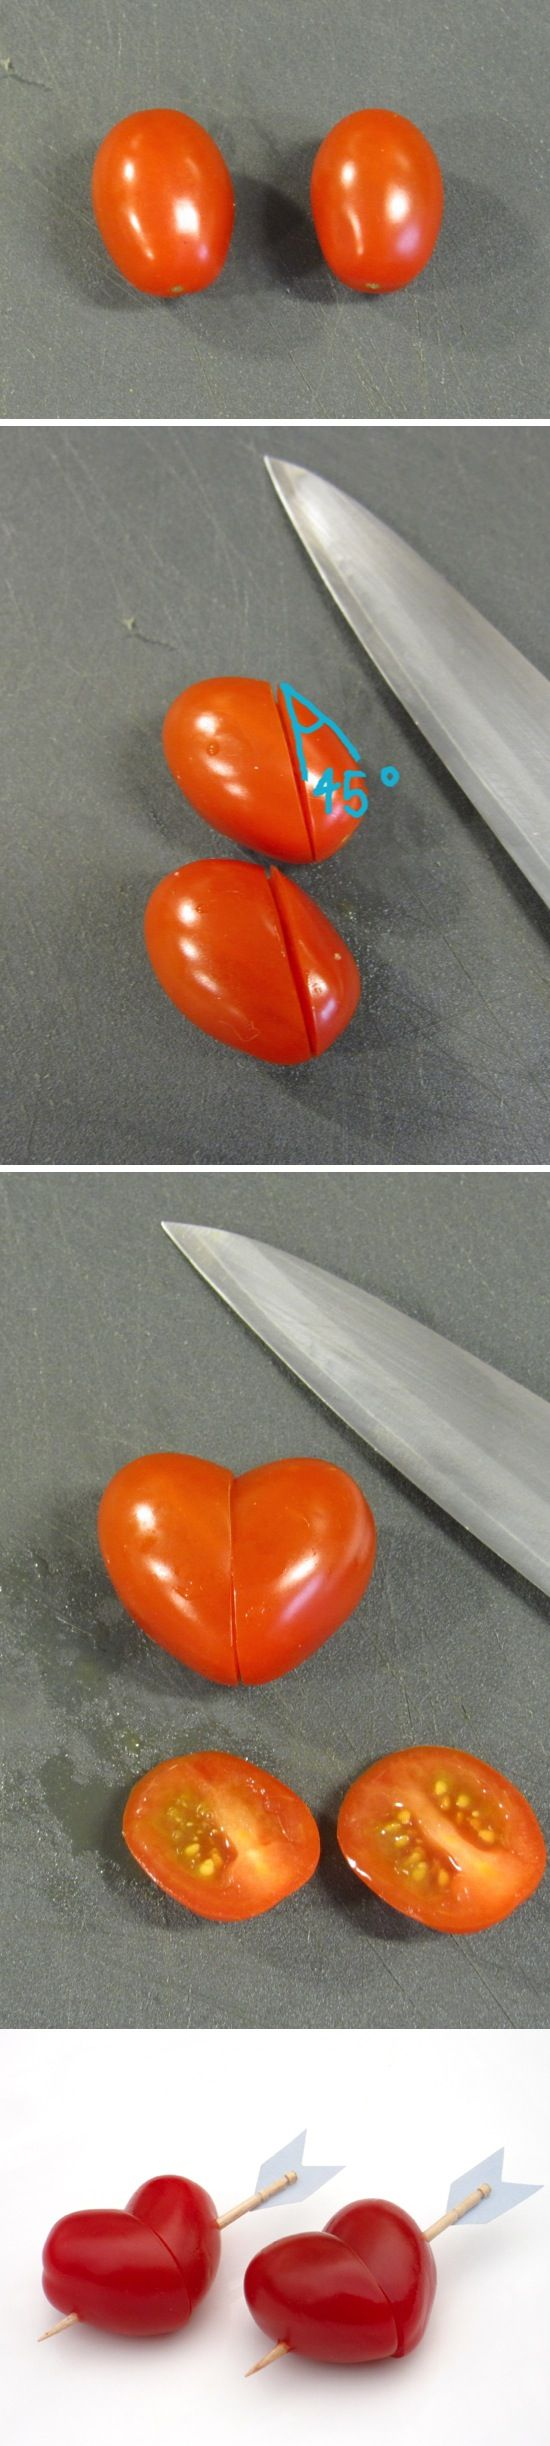 Heart Shaped Cherry Tomatoes. Use a toothpick to resemble cupid's arrow. Cute addition to a Valentine's Day veggie tray!